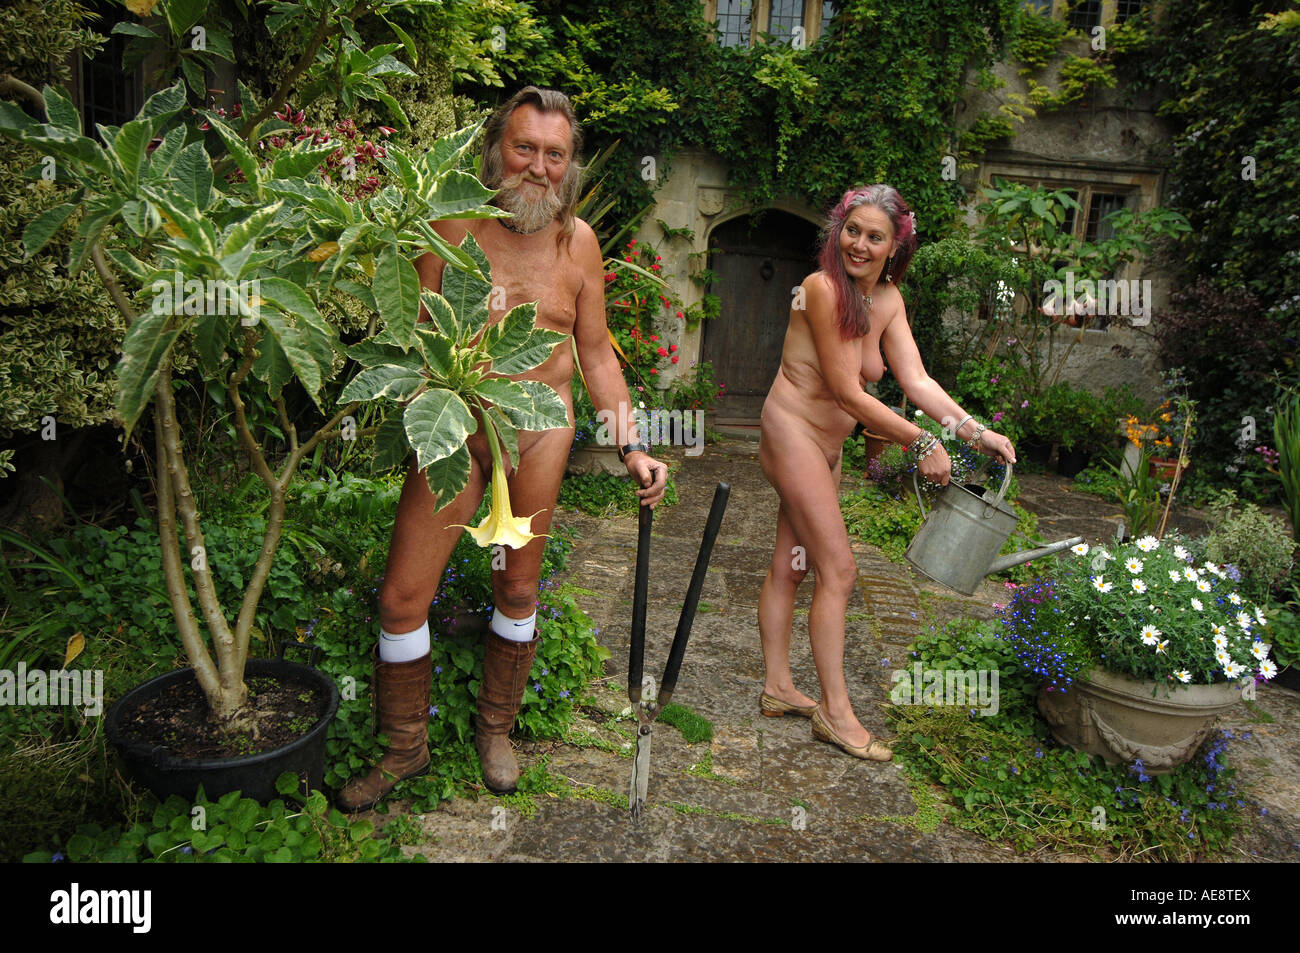 Ian and Barbara Pollard The Naked Gardeners pictured at home at the ...